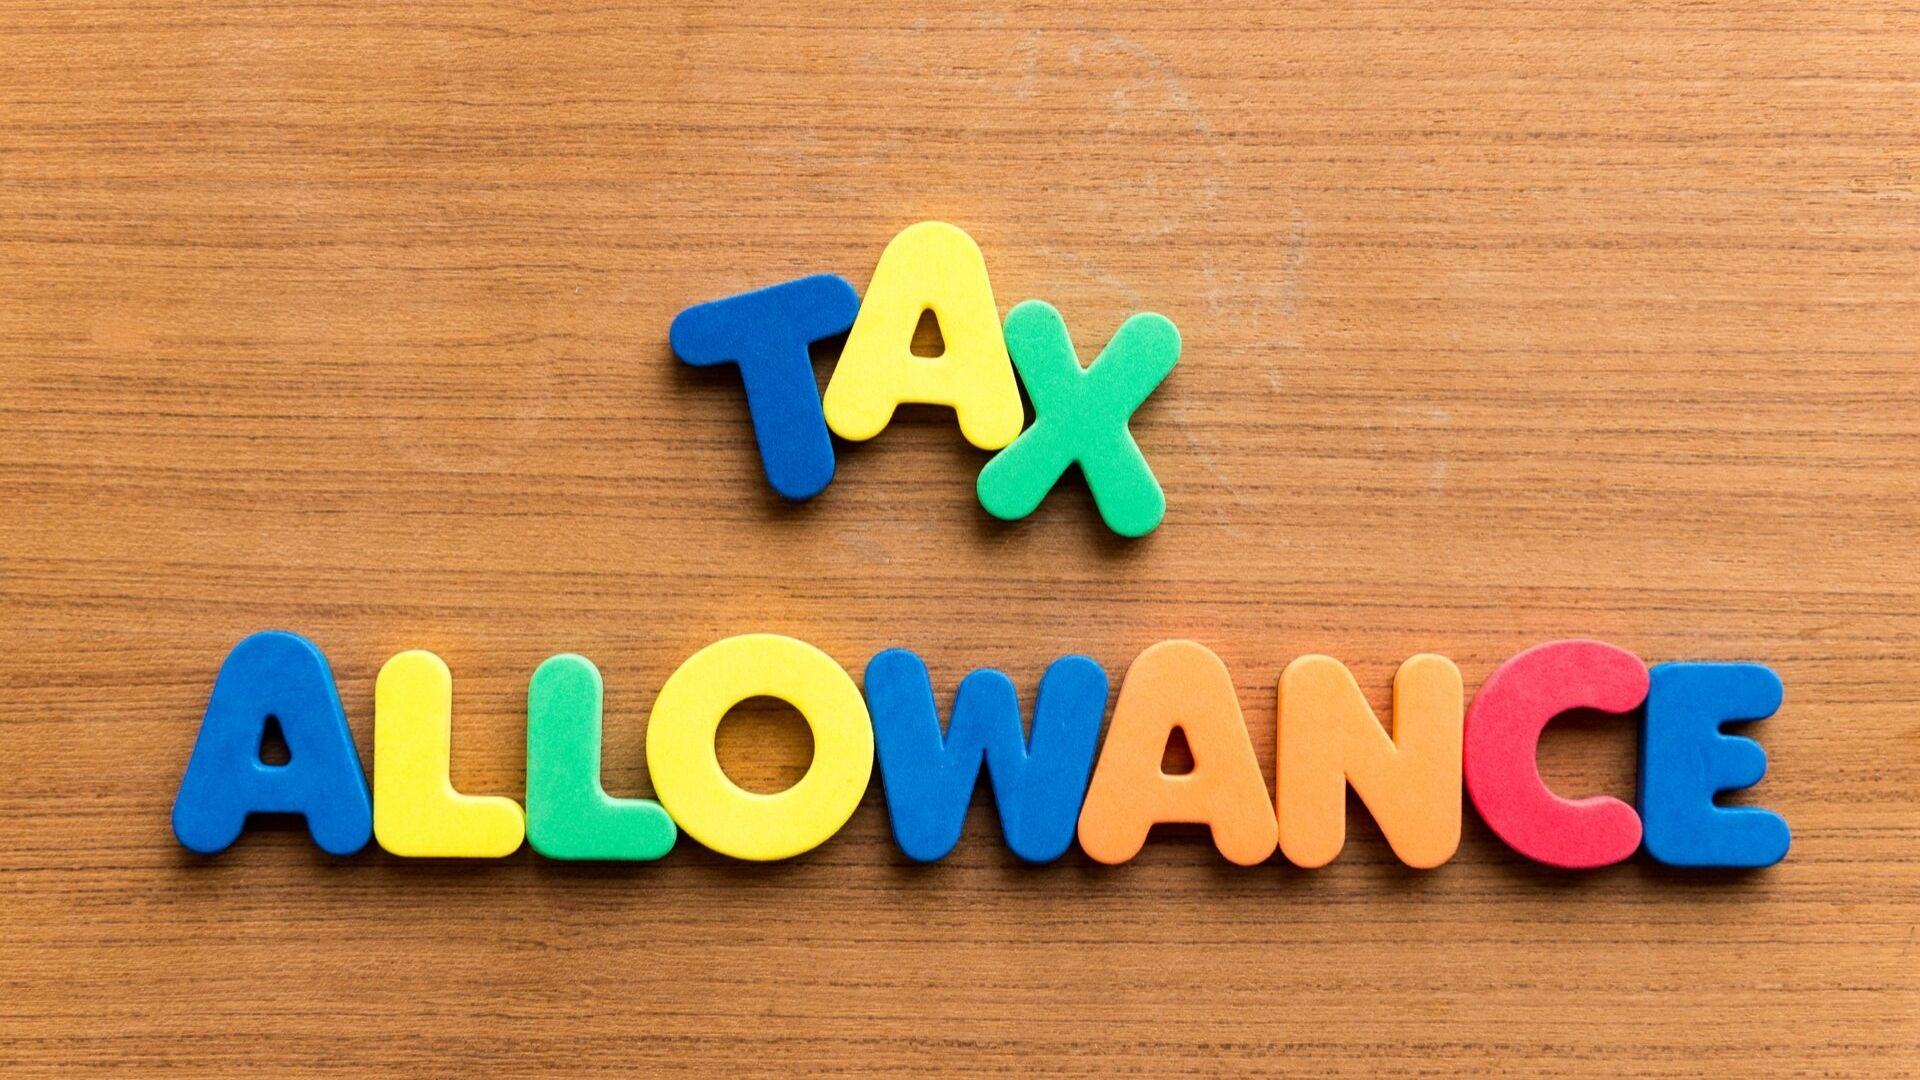 the words tax allowance are spelled out using plastic letters on a brown desk